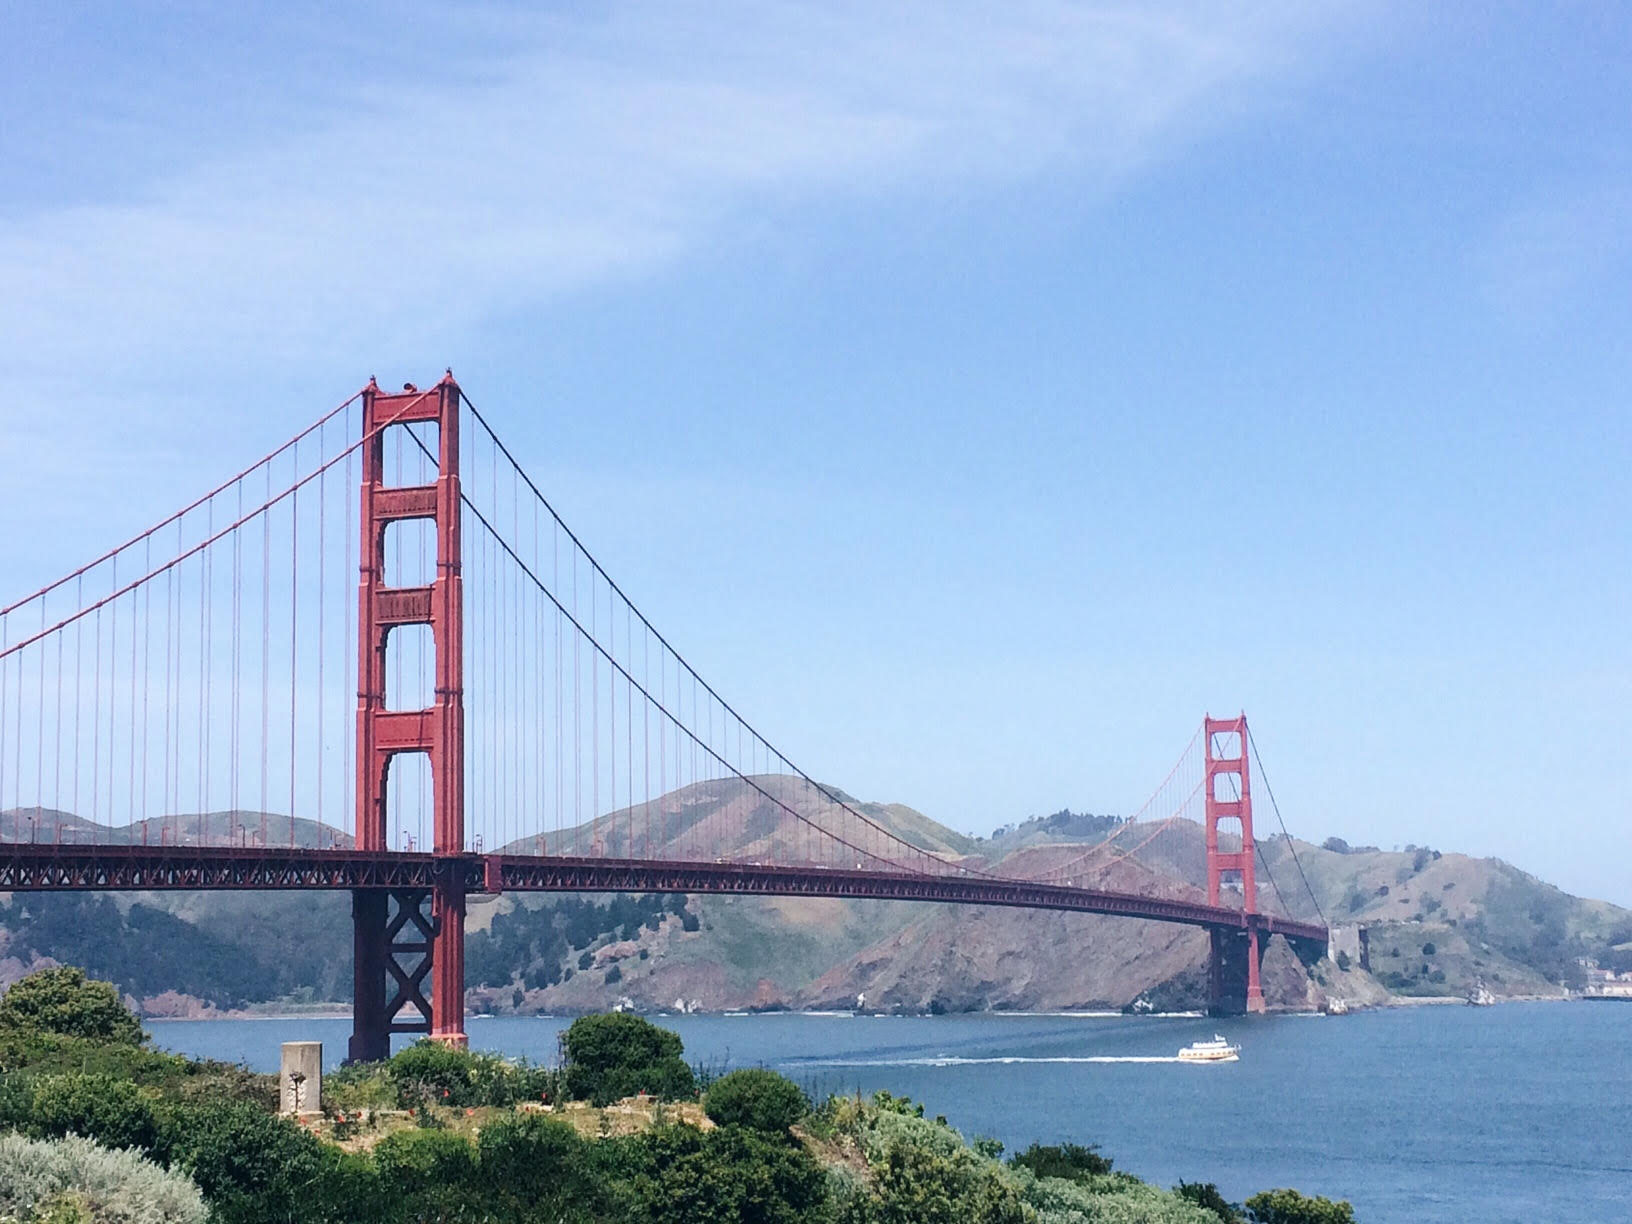 The gorgeous GG Bridge. It looks so big up close!